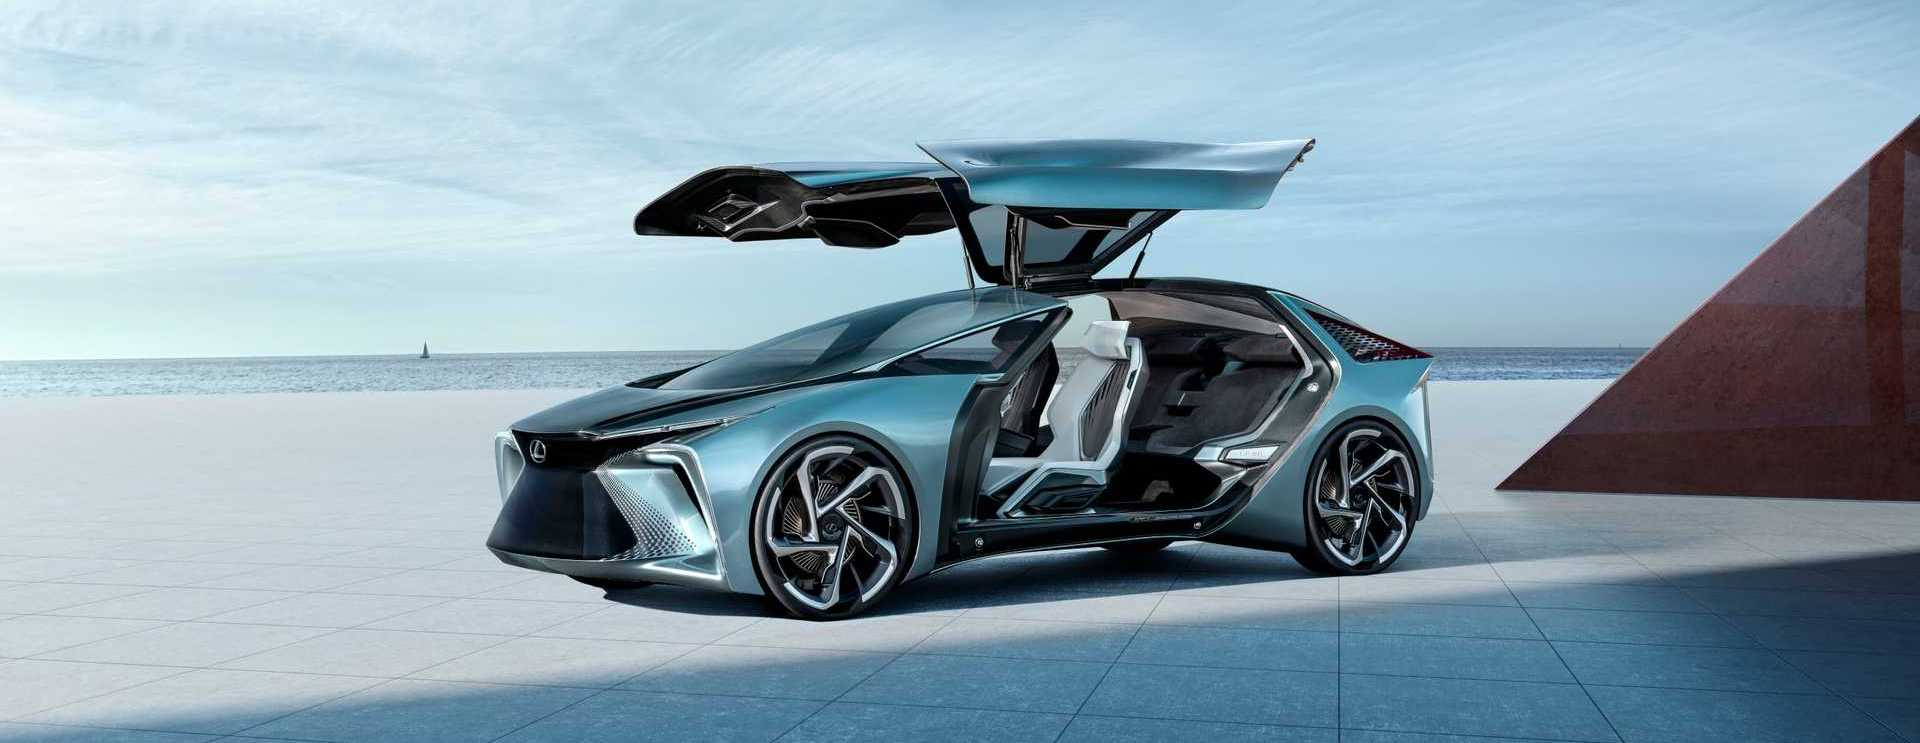 Lexus LF-30 Unveiled With 536 HP And Massive Gullwing Doors